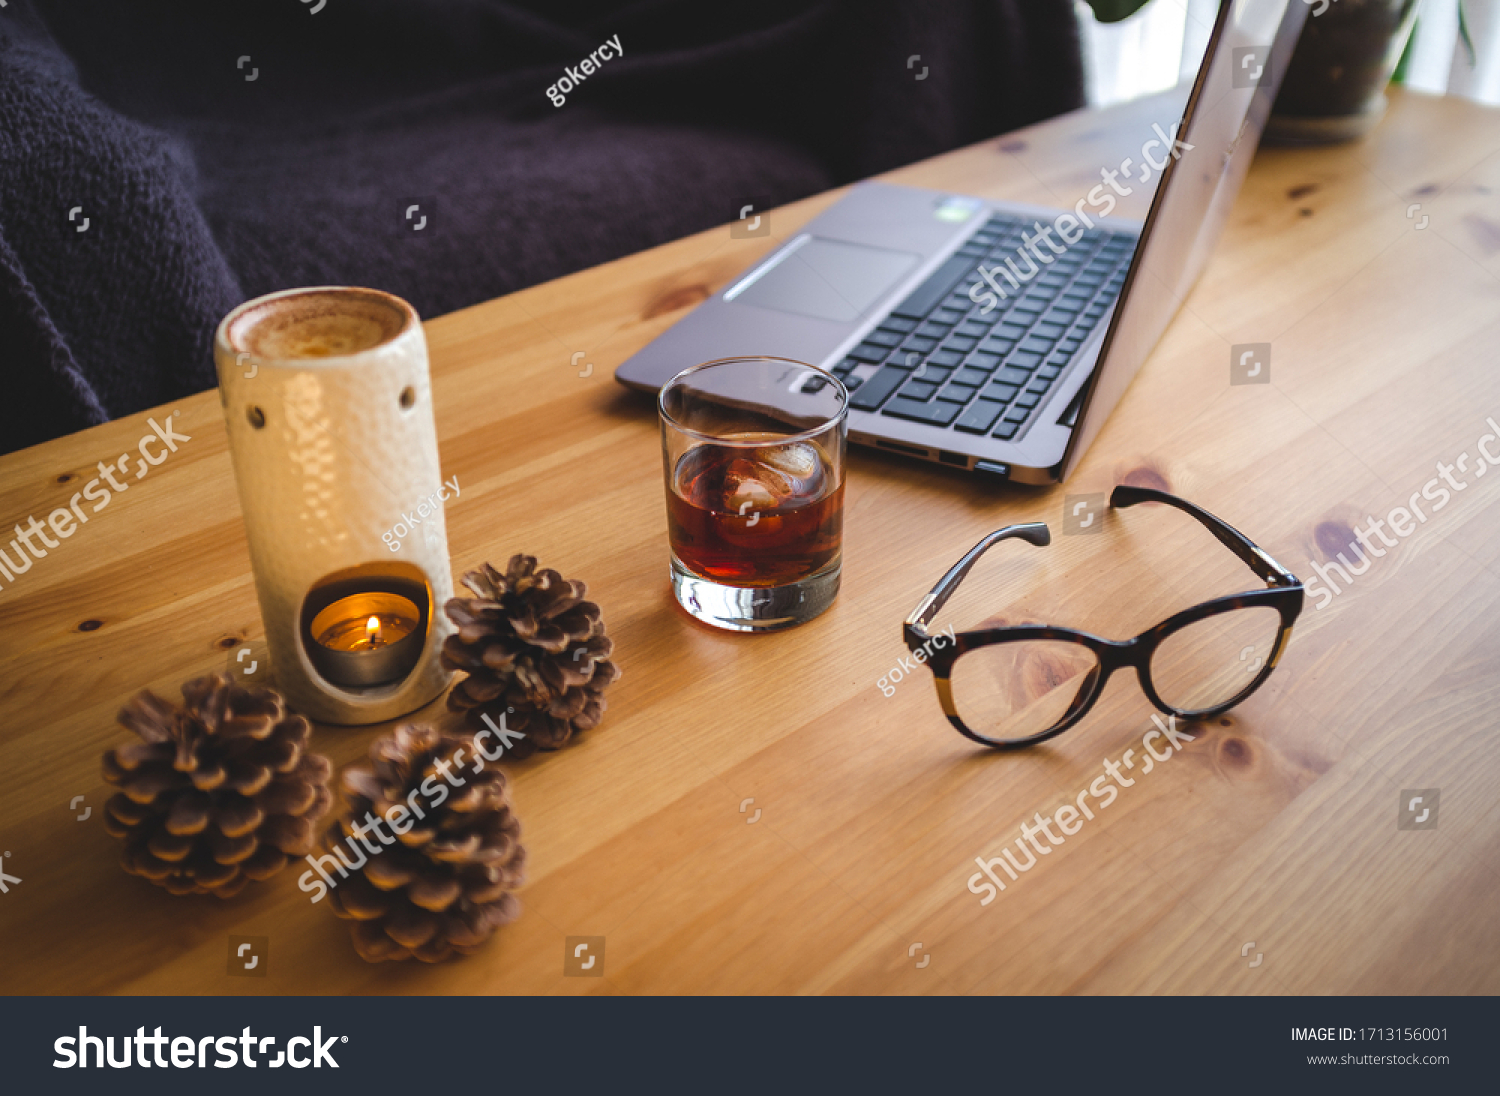 stock-photo-cozy-minimalist-workspace-wi